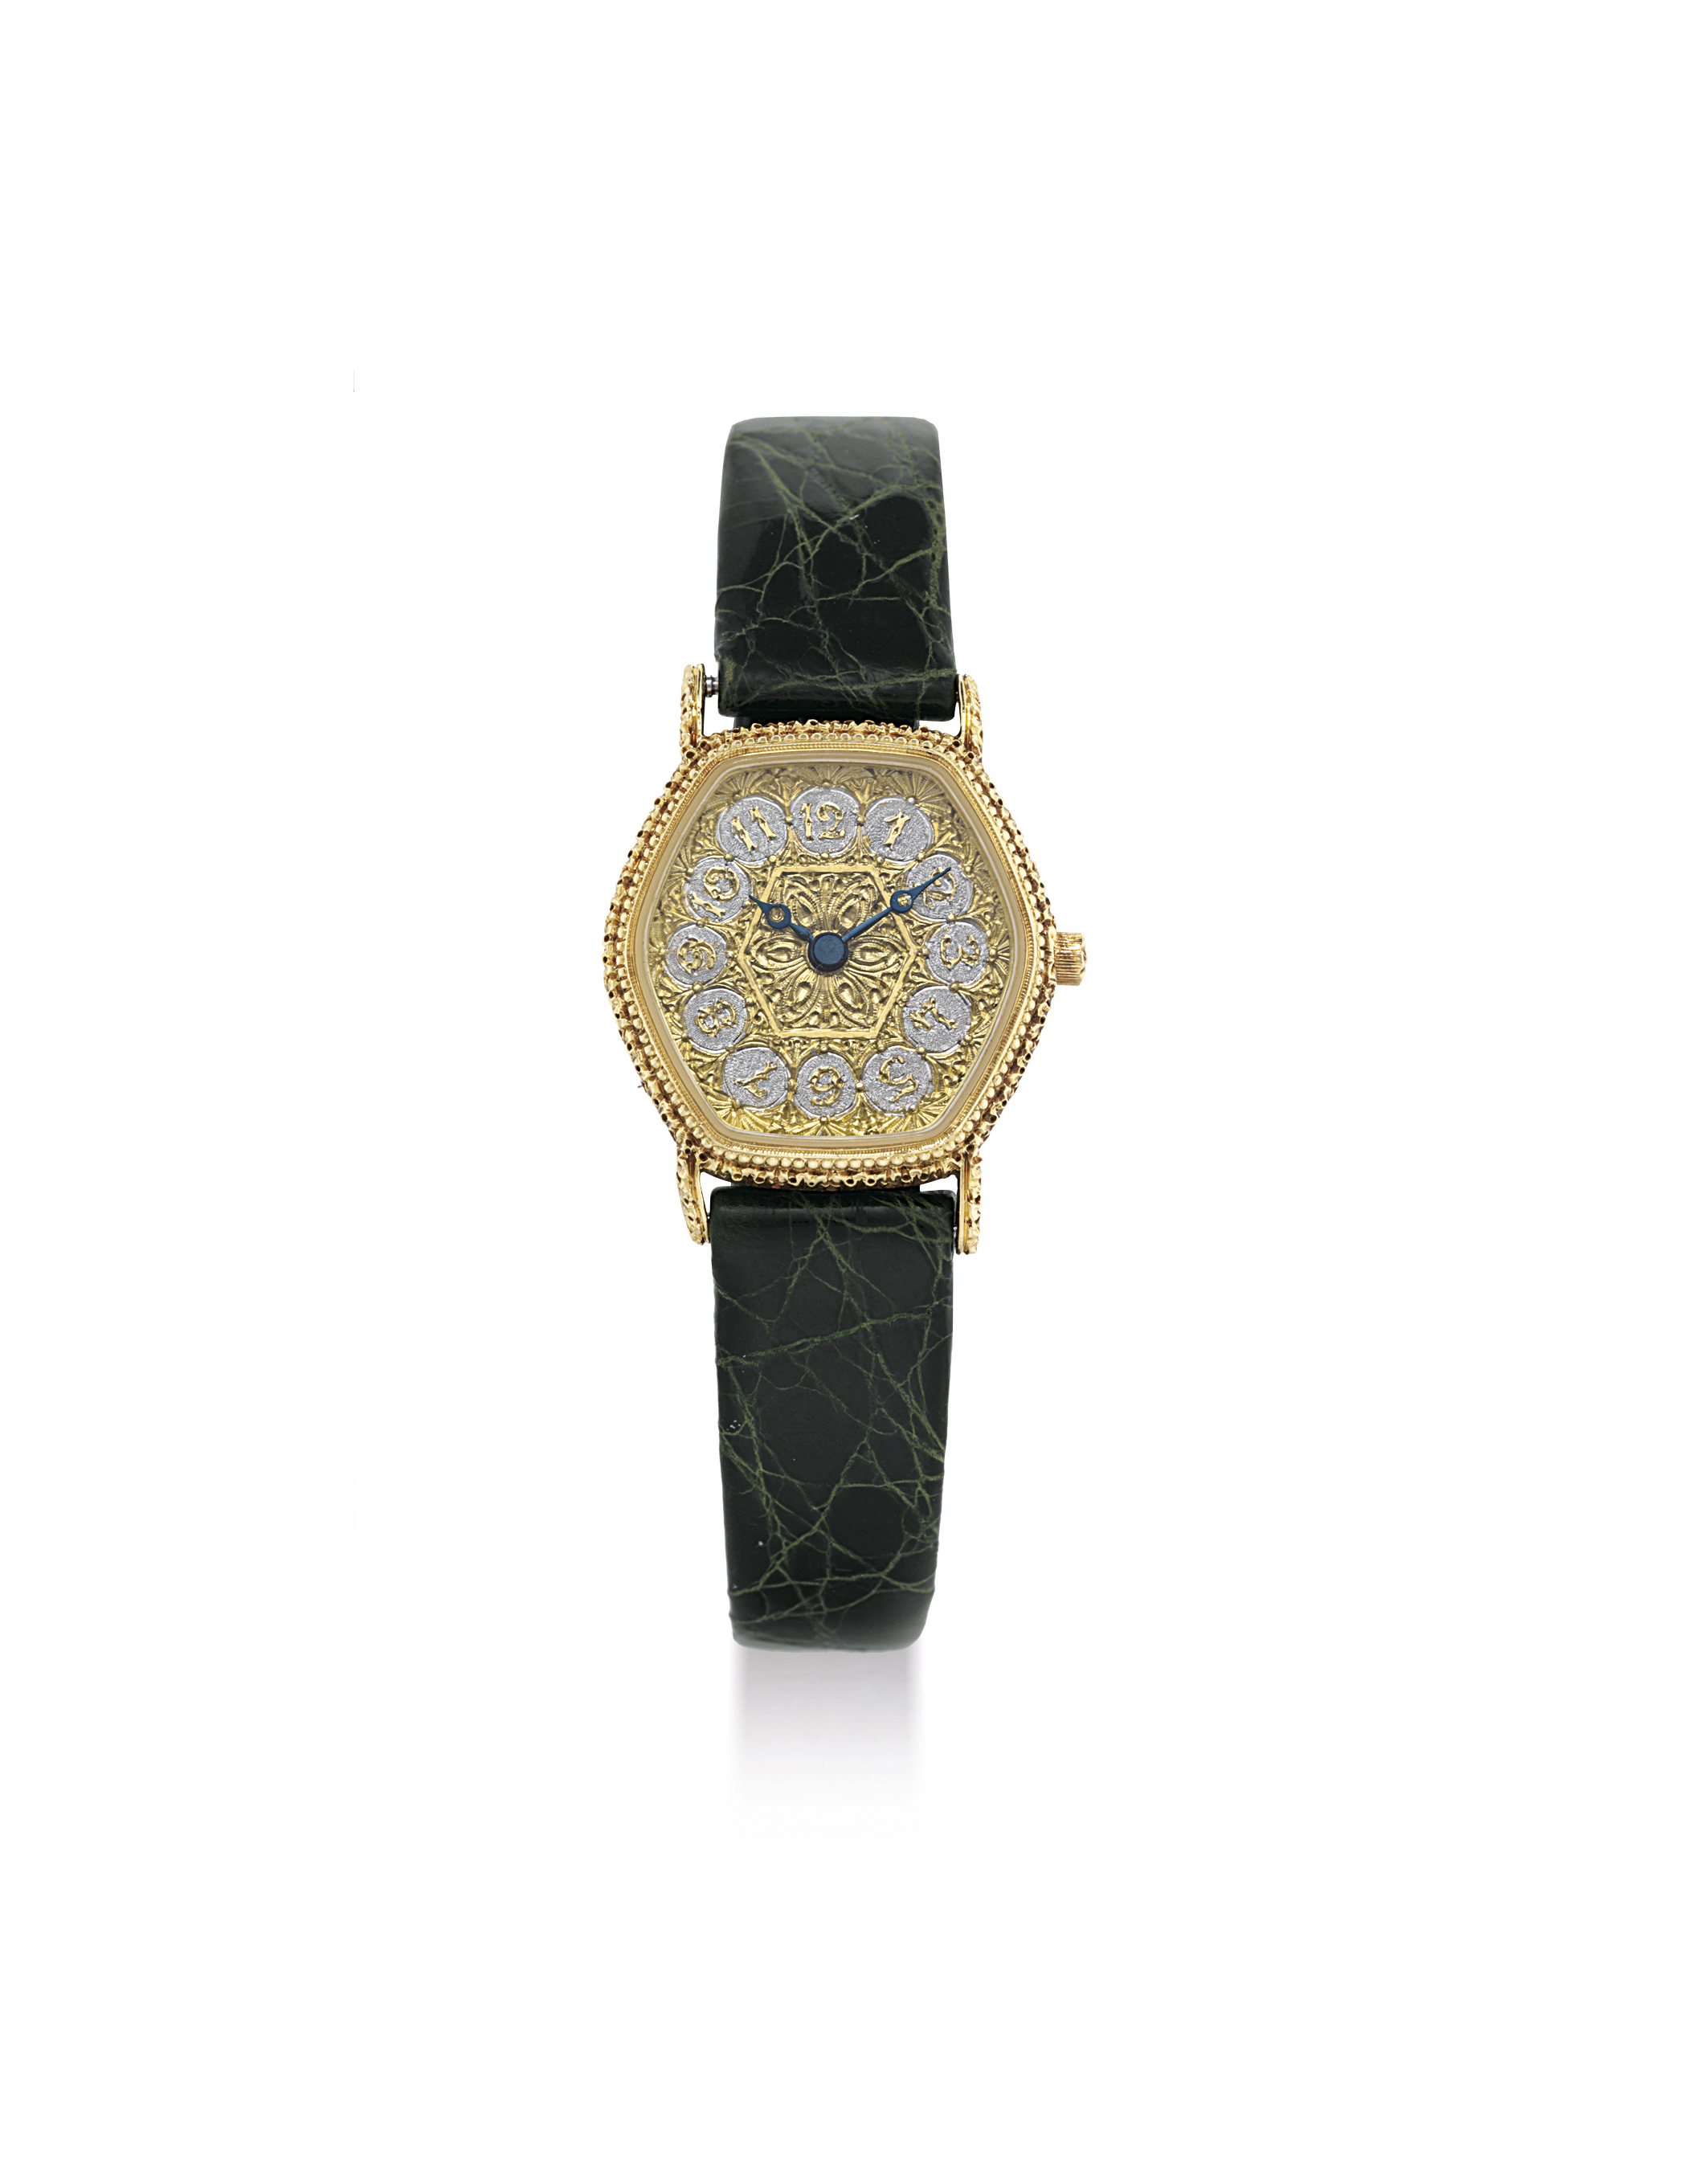 GIANMARIA BUCCELLATI. A LADY'S 18K GOLD HEXAGONAL WRISTWATCH